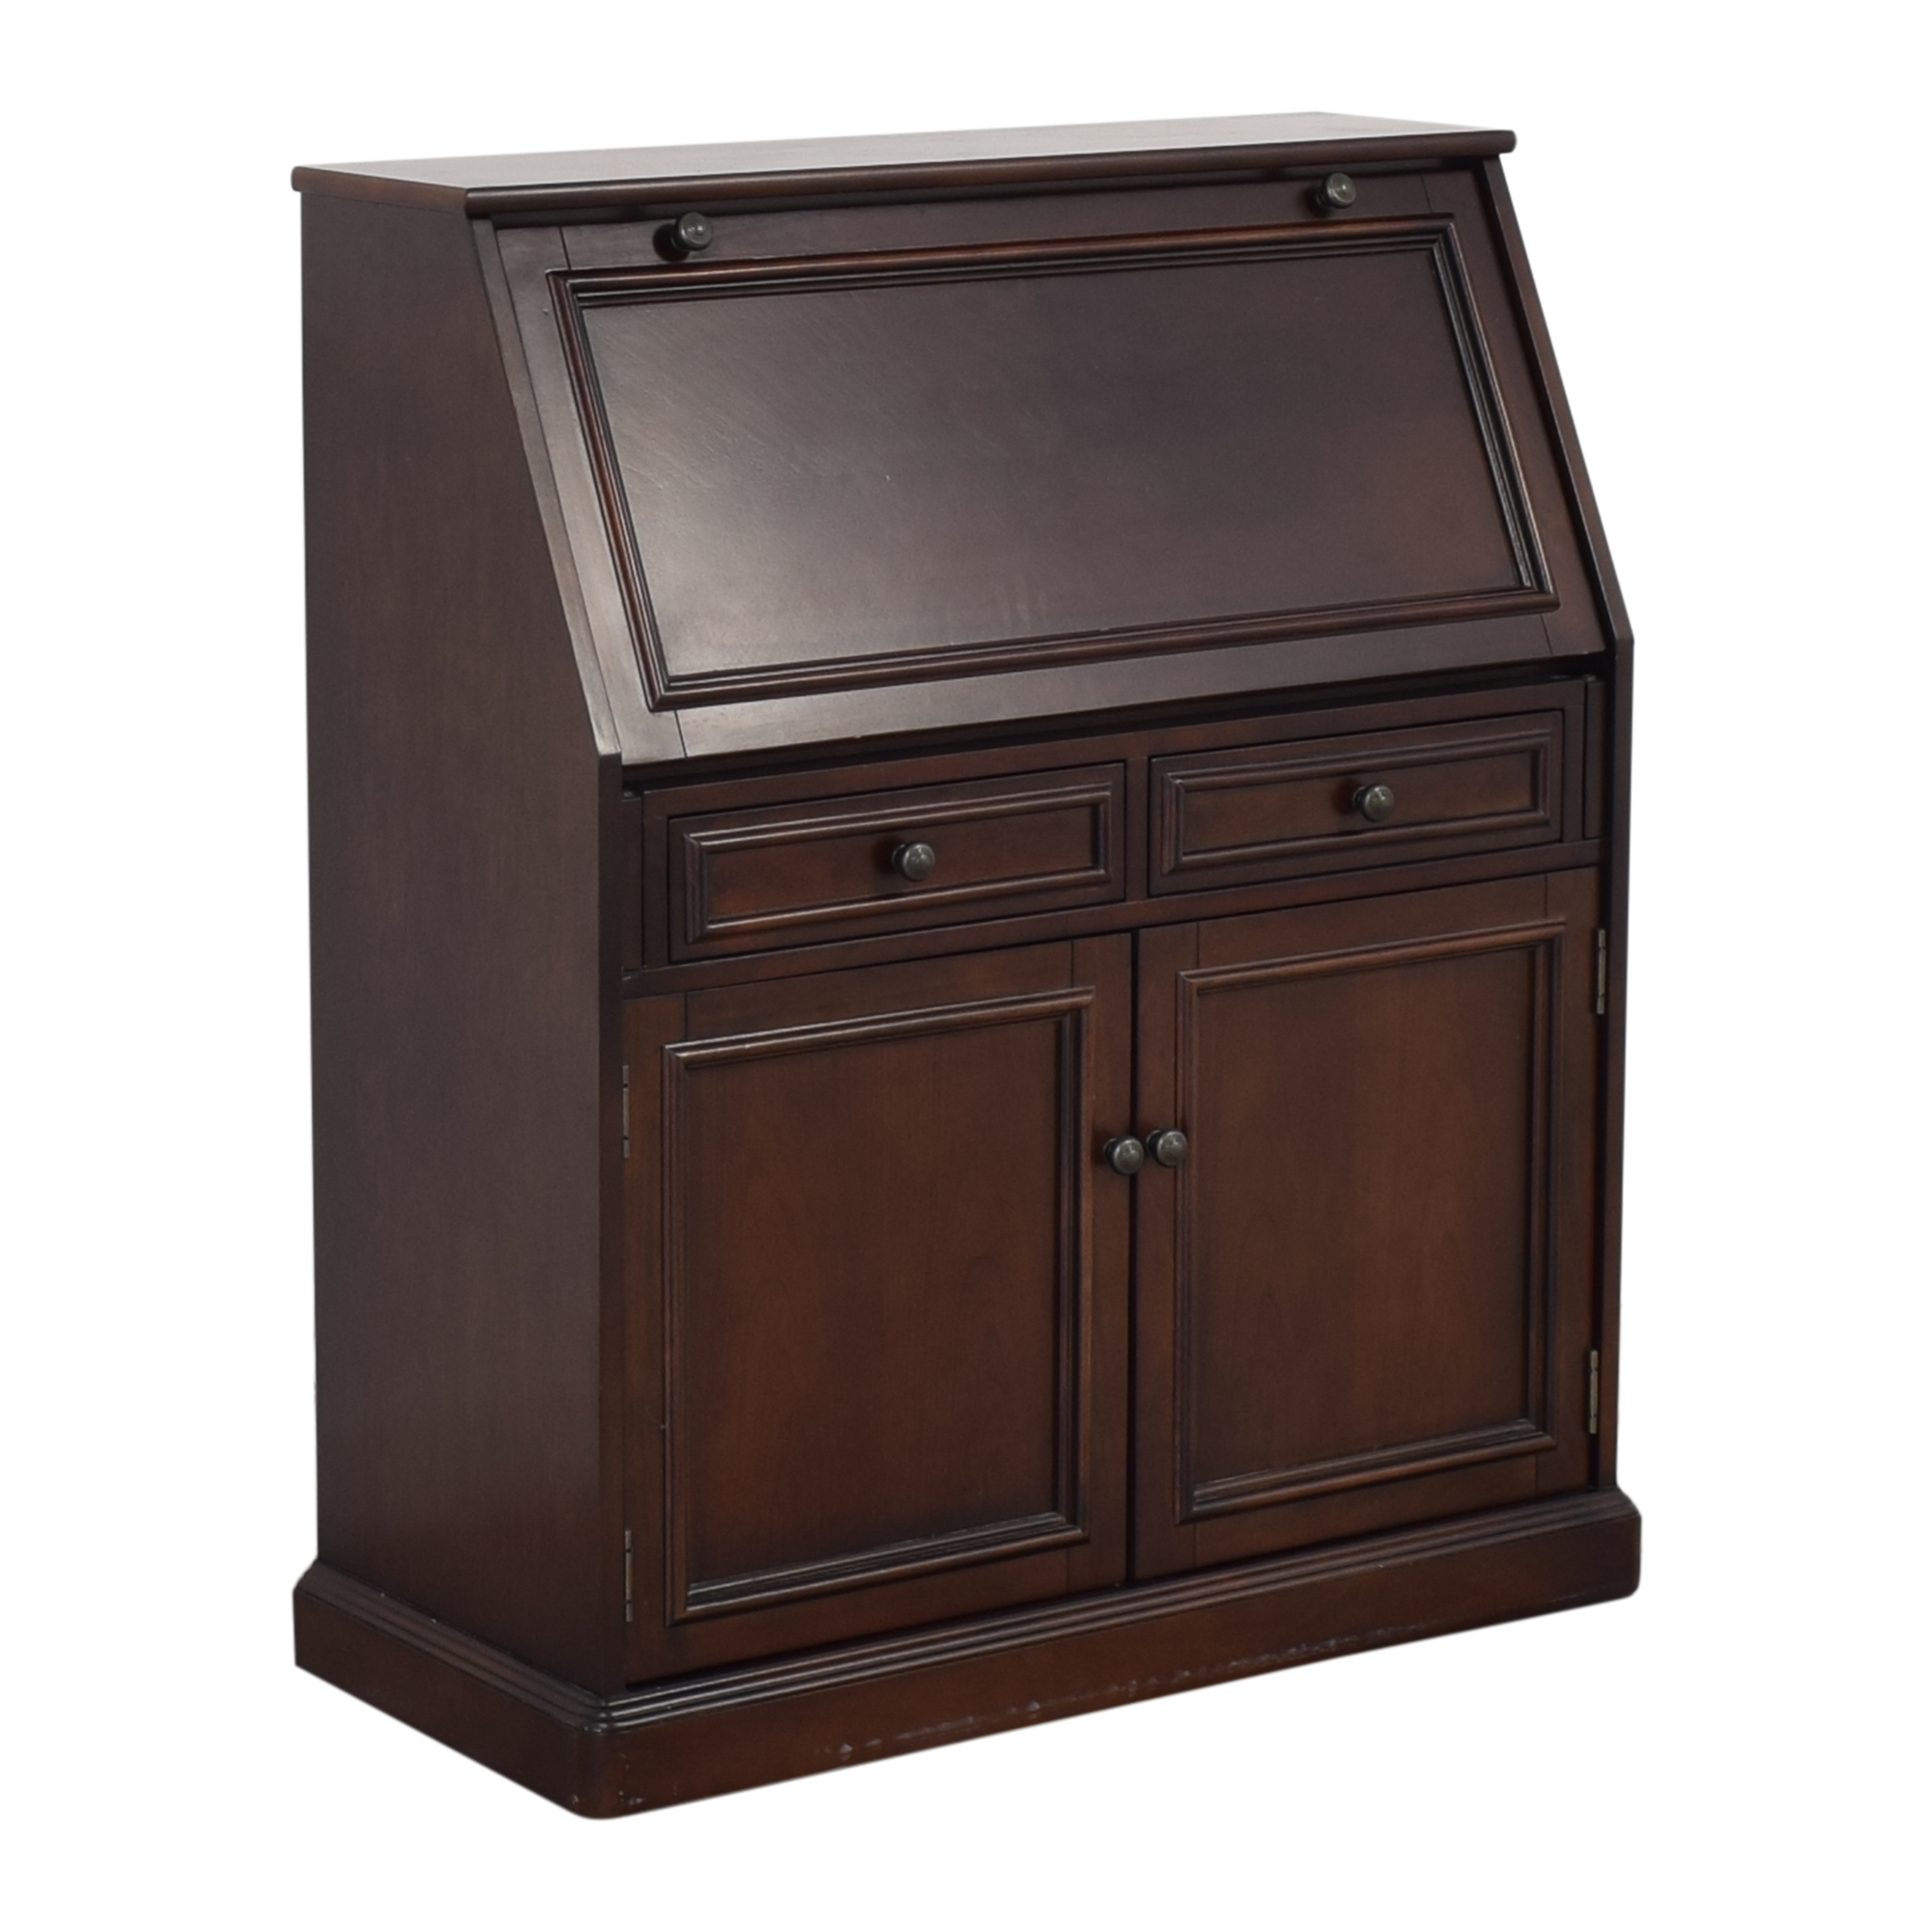 Raymour & Flanigan Raymour & Flanigan Jennings Laptop Desk Armoire for sale